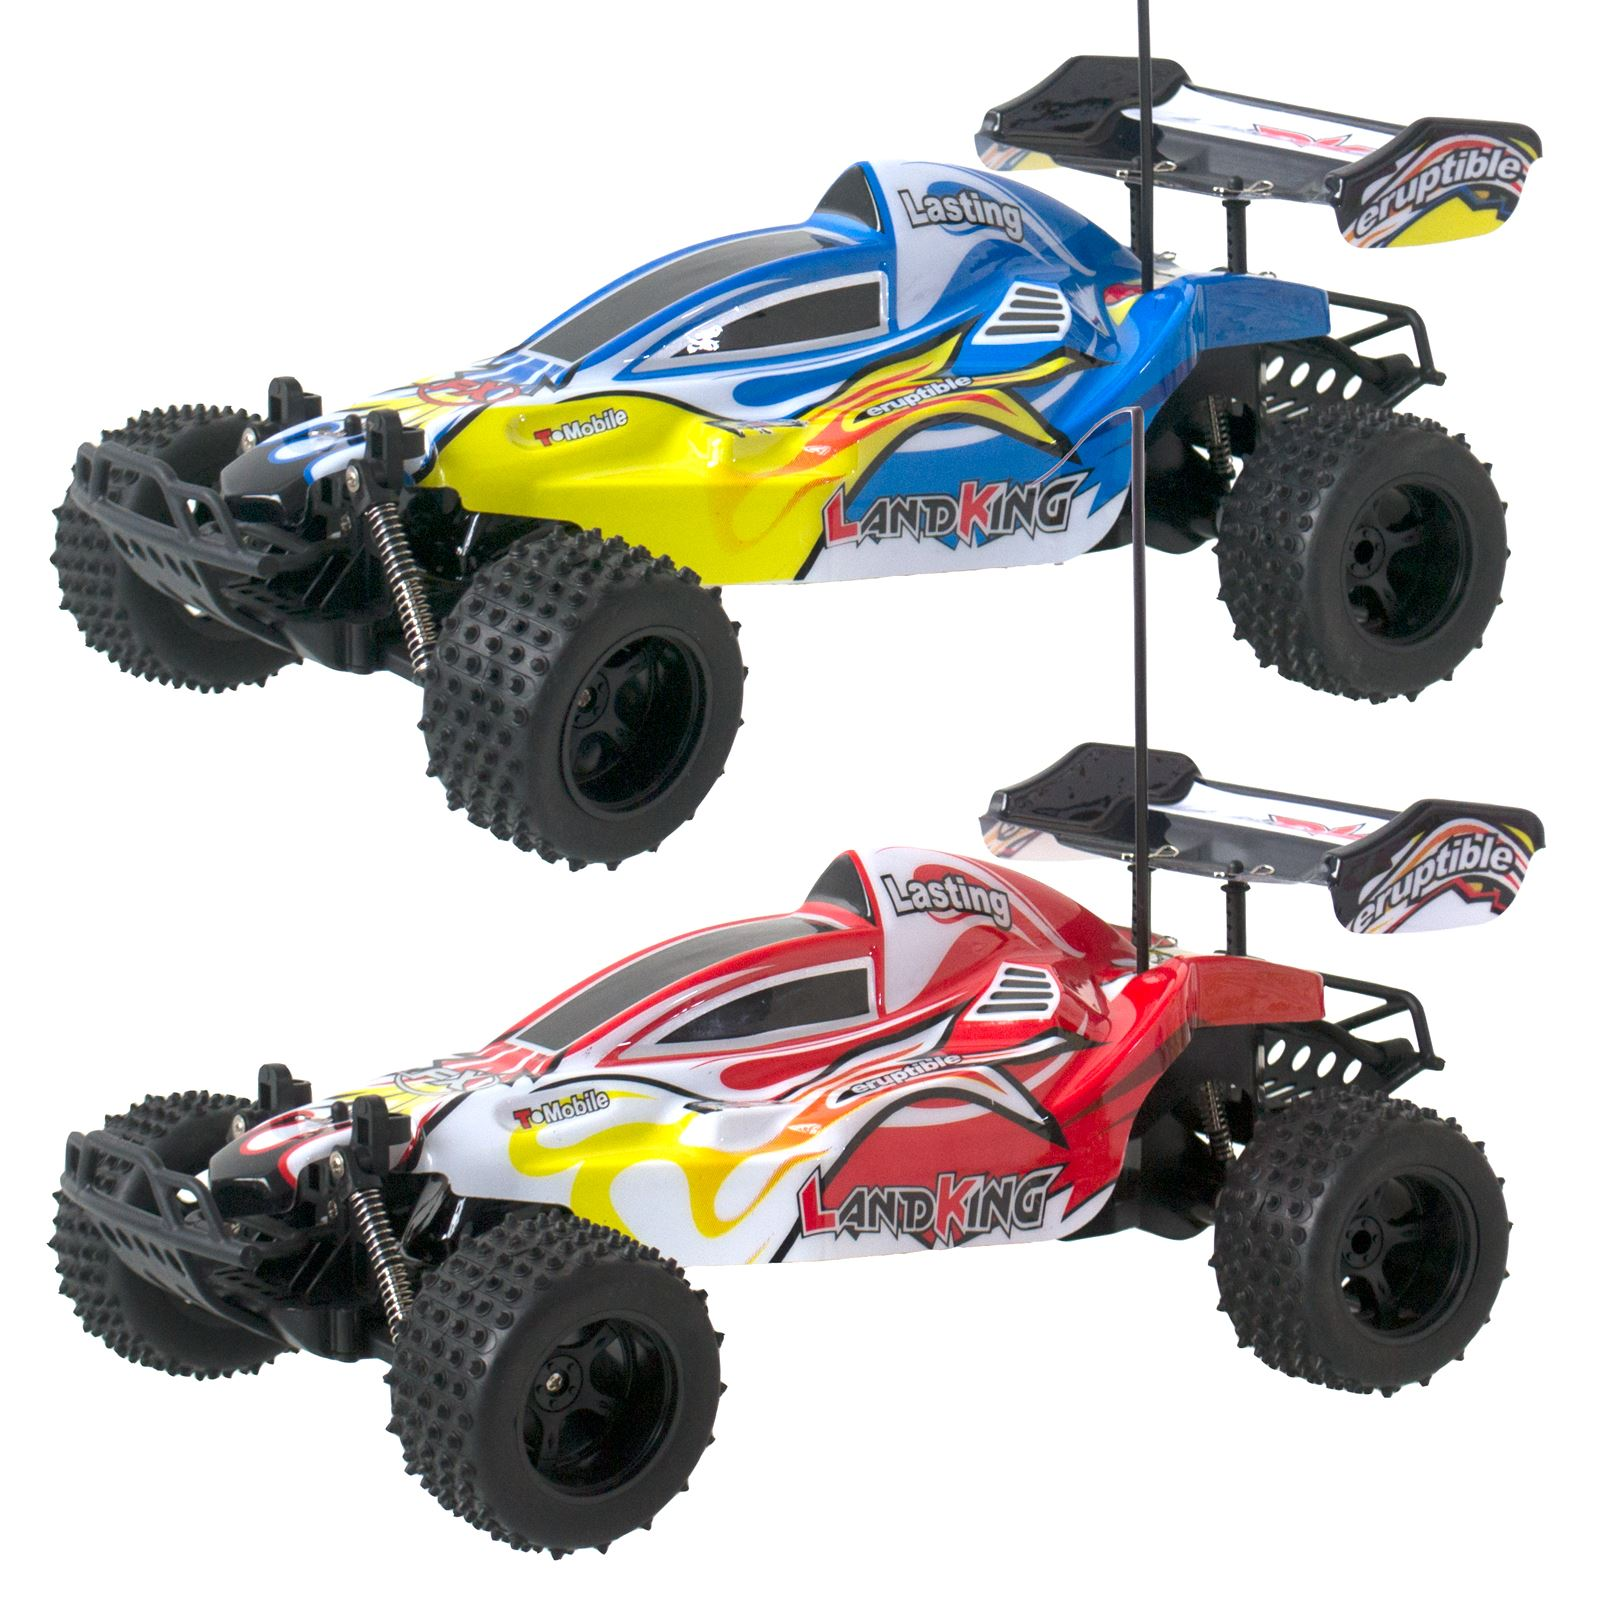 remote radio control rc landking 1 10 off road speed racing buggy car 27mhz red. Black Bedroom Furniture Sets. Home Design Ideas